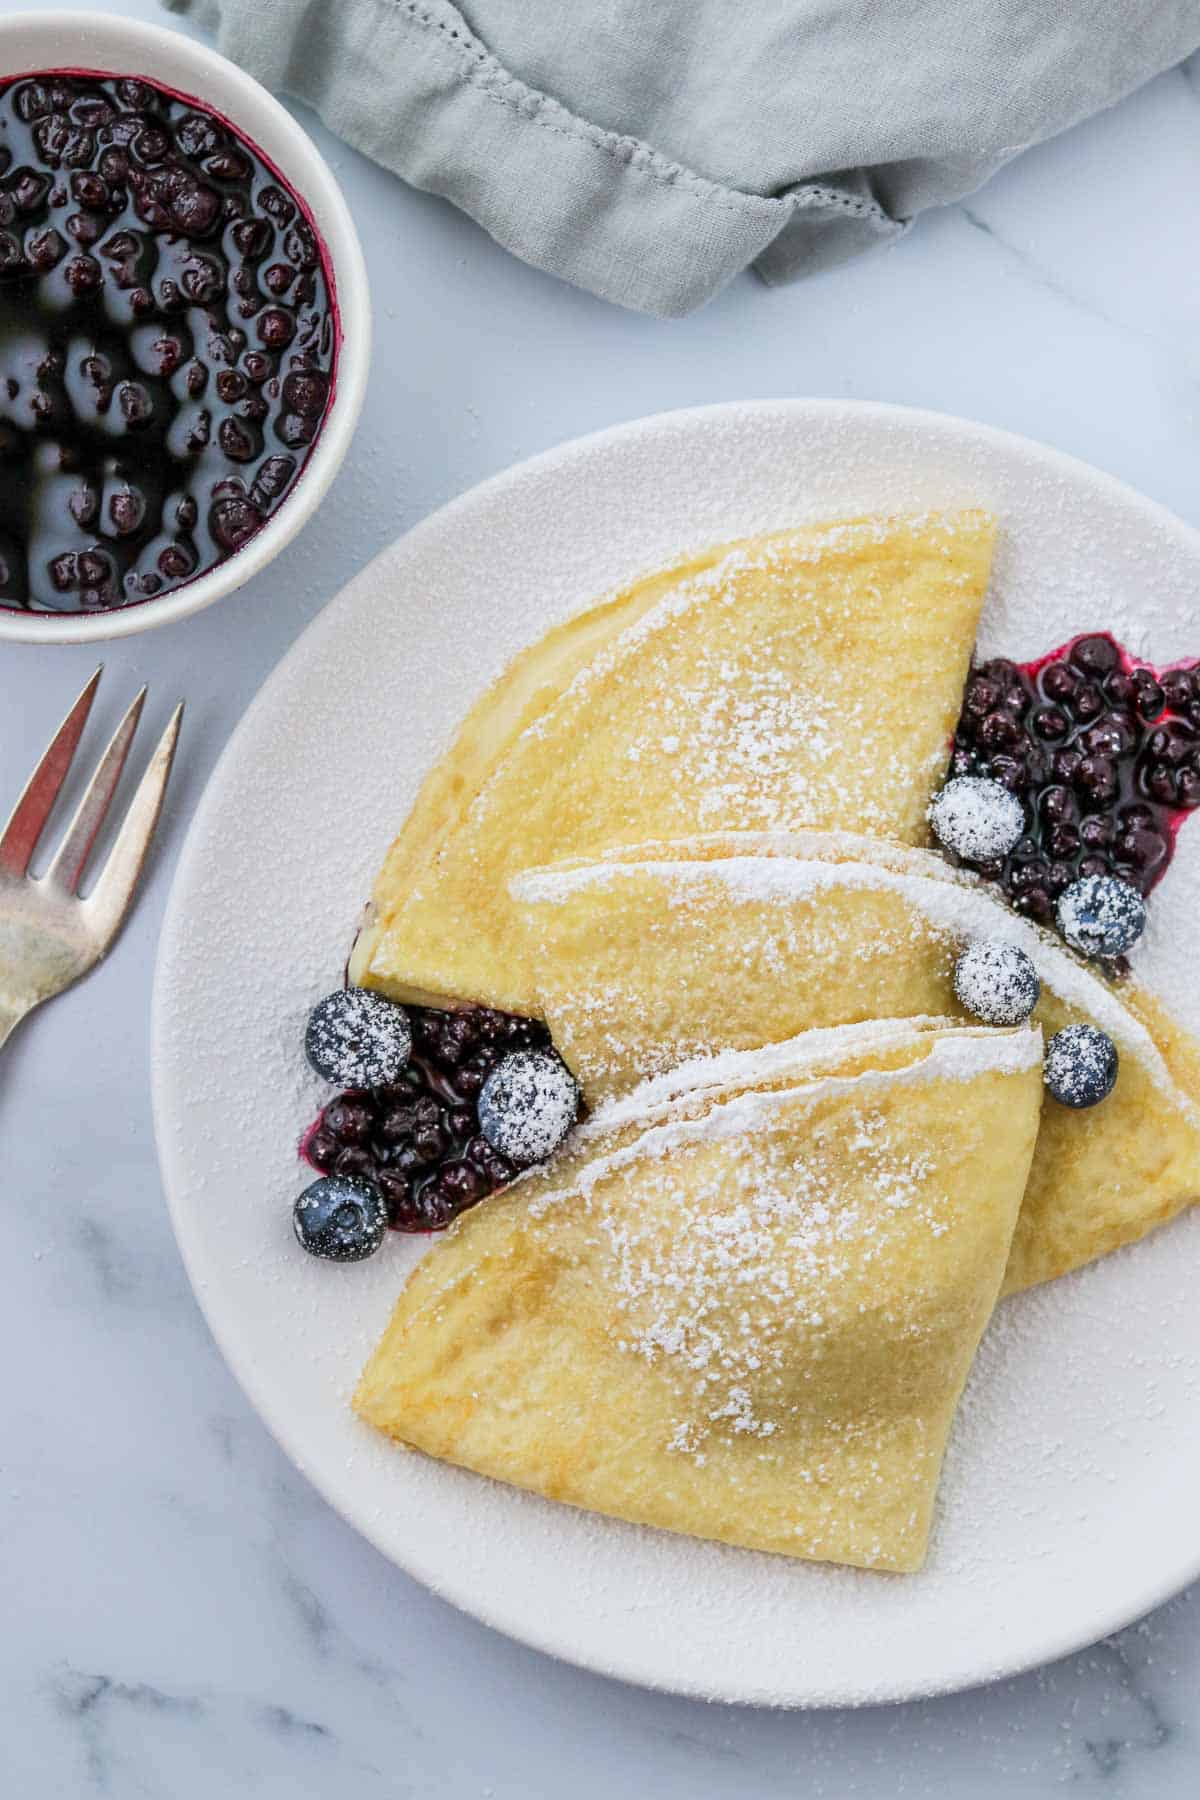 Swedish pancakes topped with blueberries and powdered sugar.